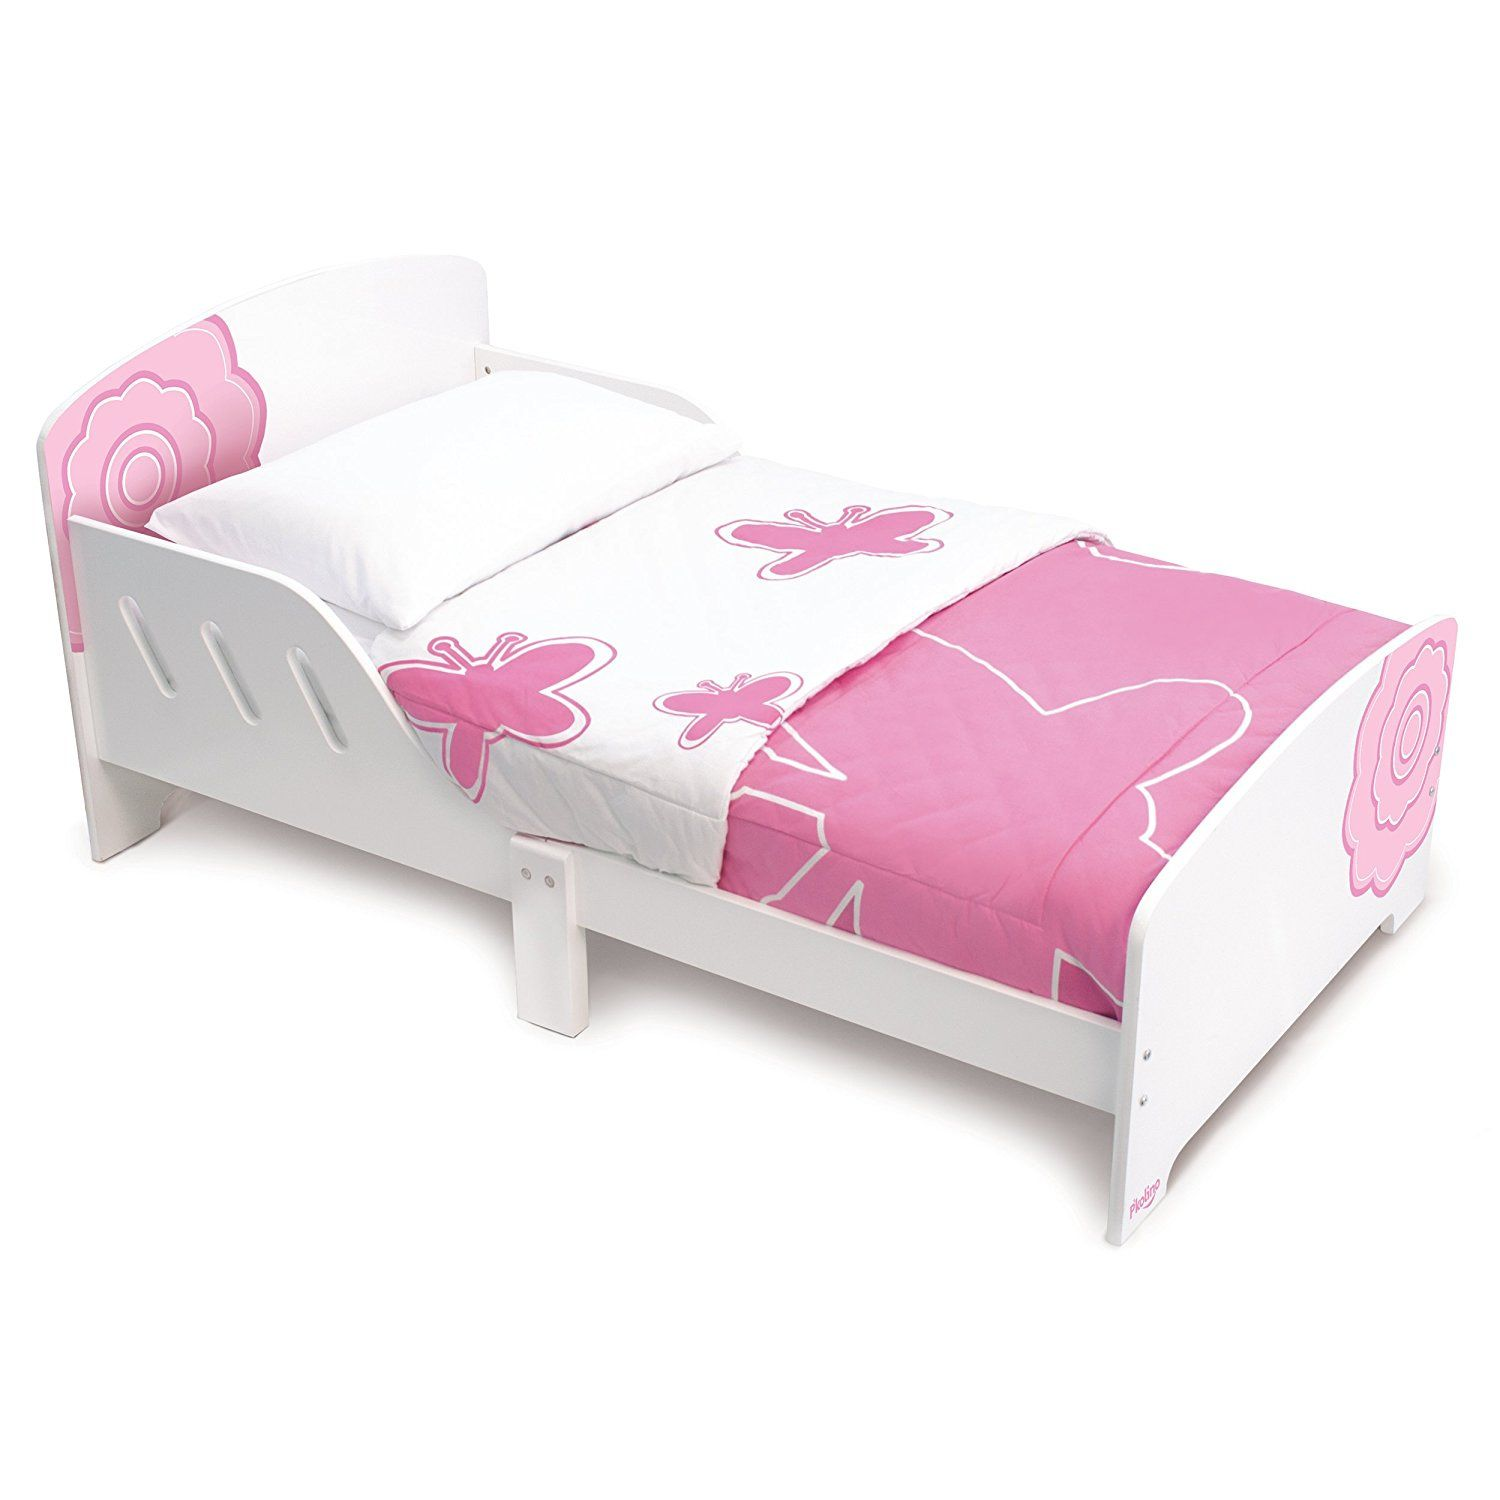 55 portable bed toddler guest bedroom decorating ideas check more